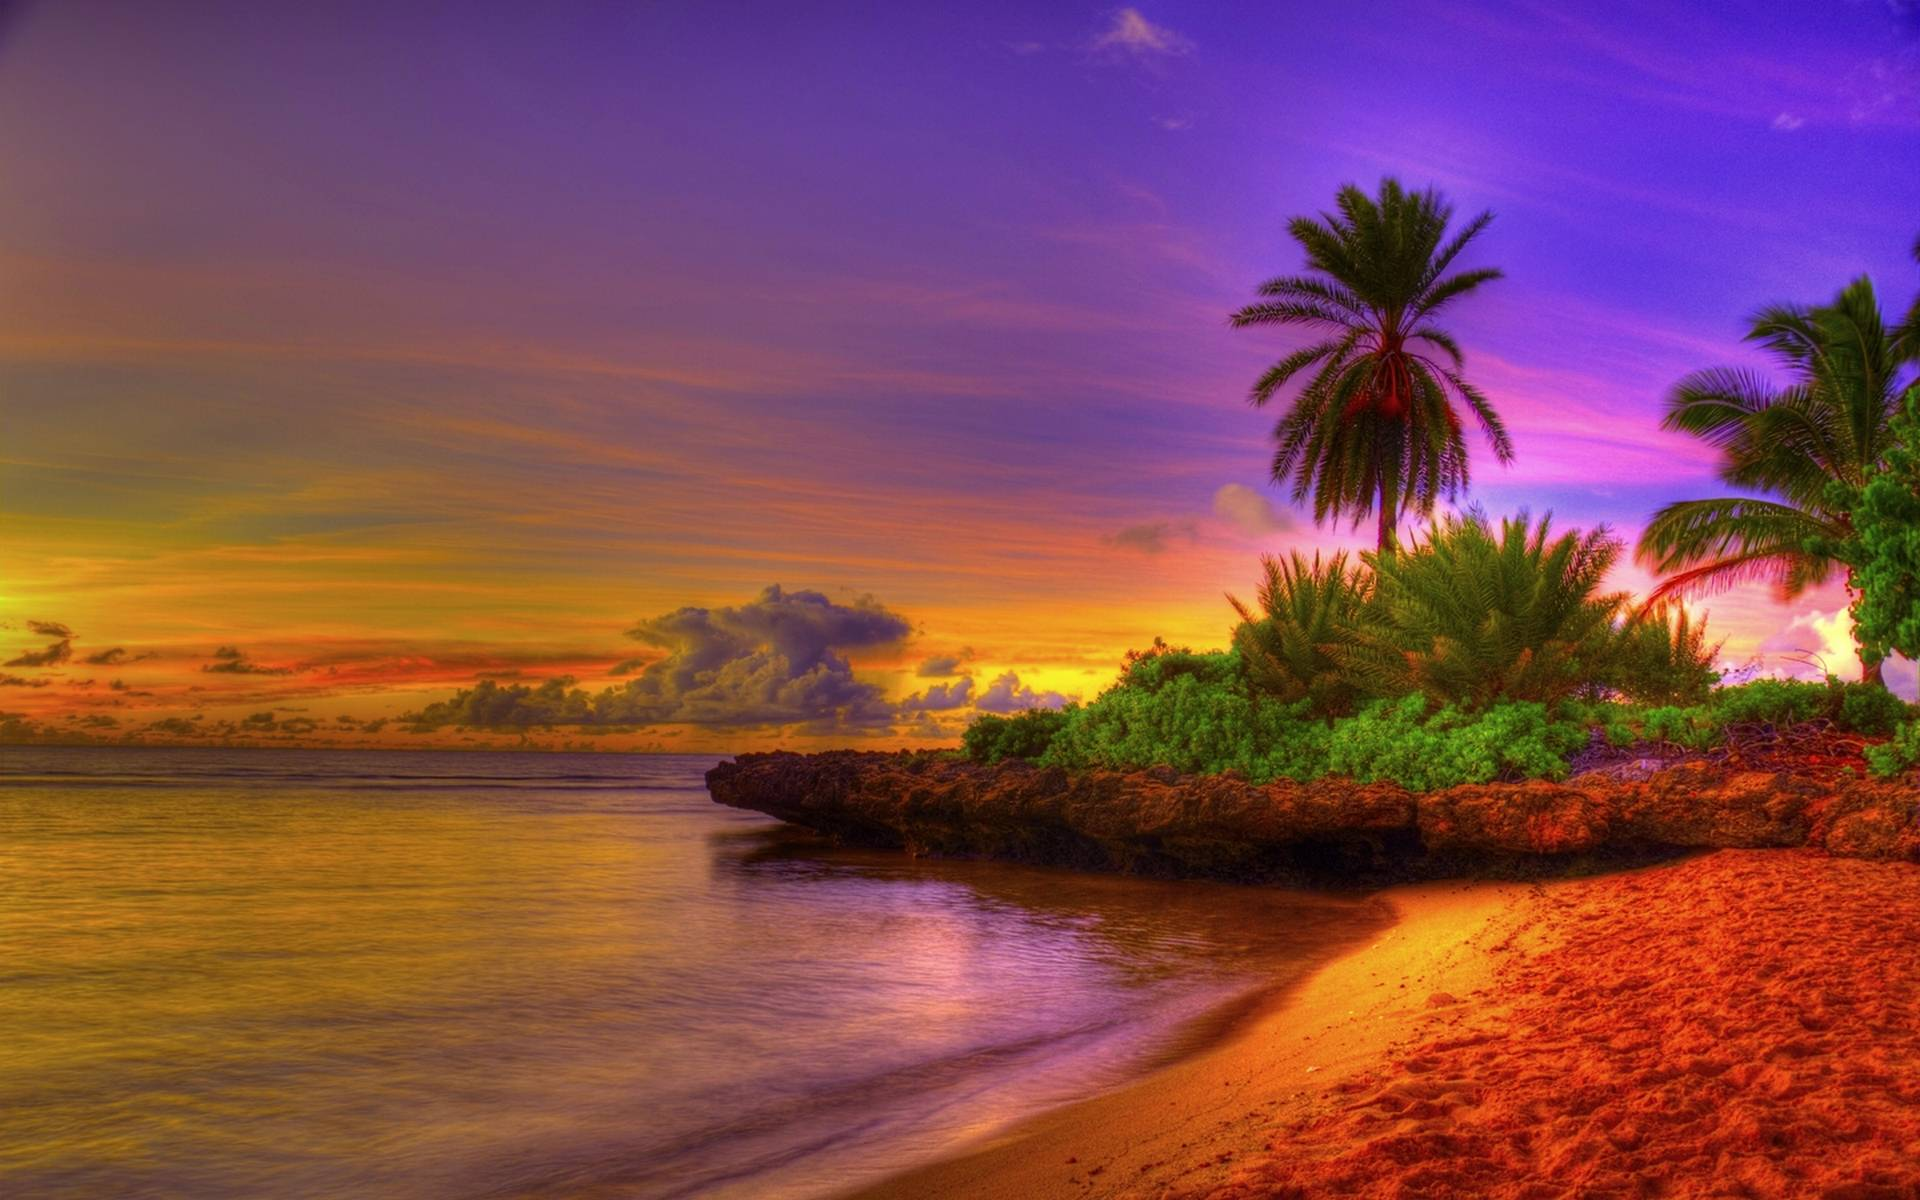 Beach Sunrise Wallpapers - Wallpaper Cave